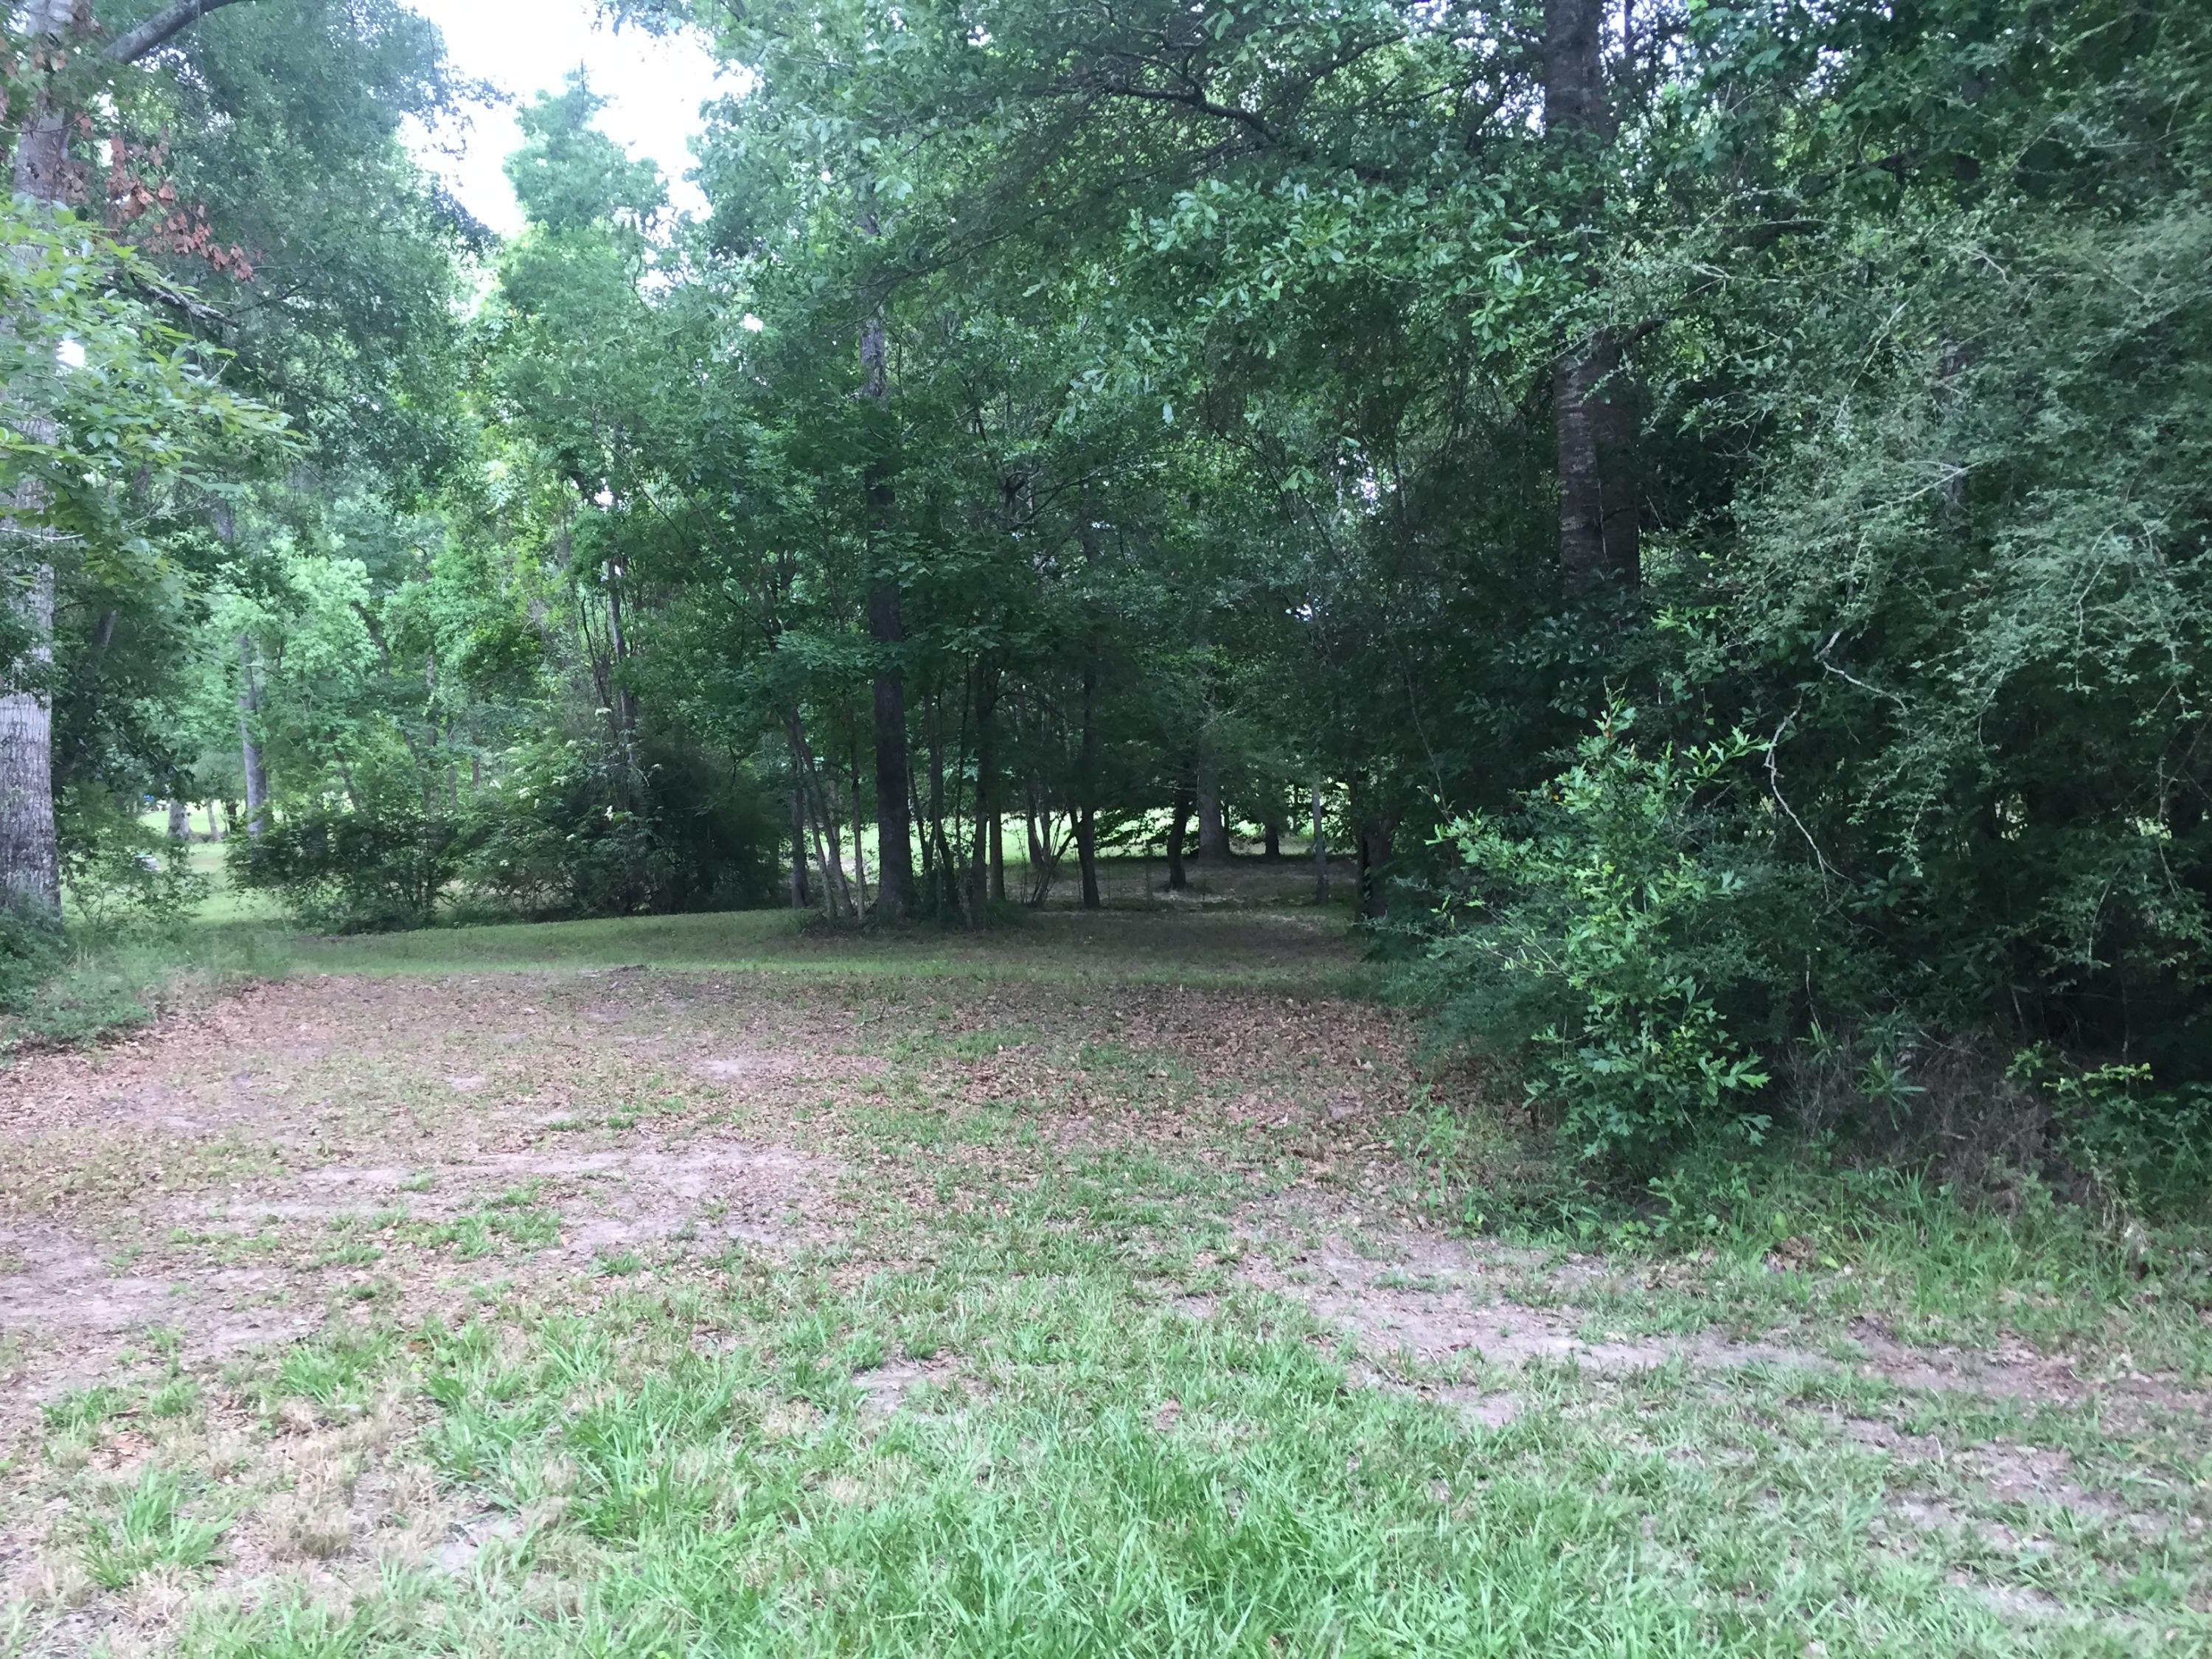 DeRidder land for sale,  TBD CHURCH ST, DeRidder LA - $50,000